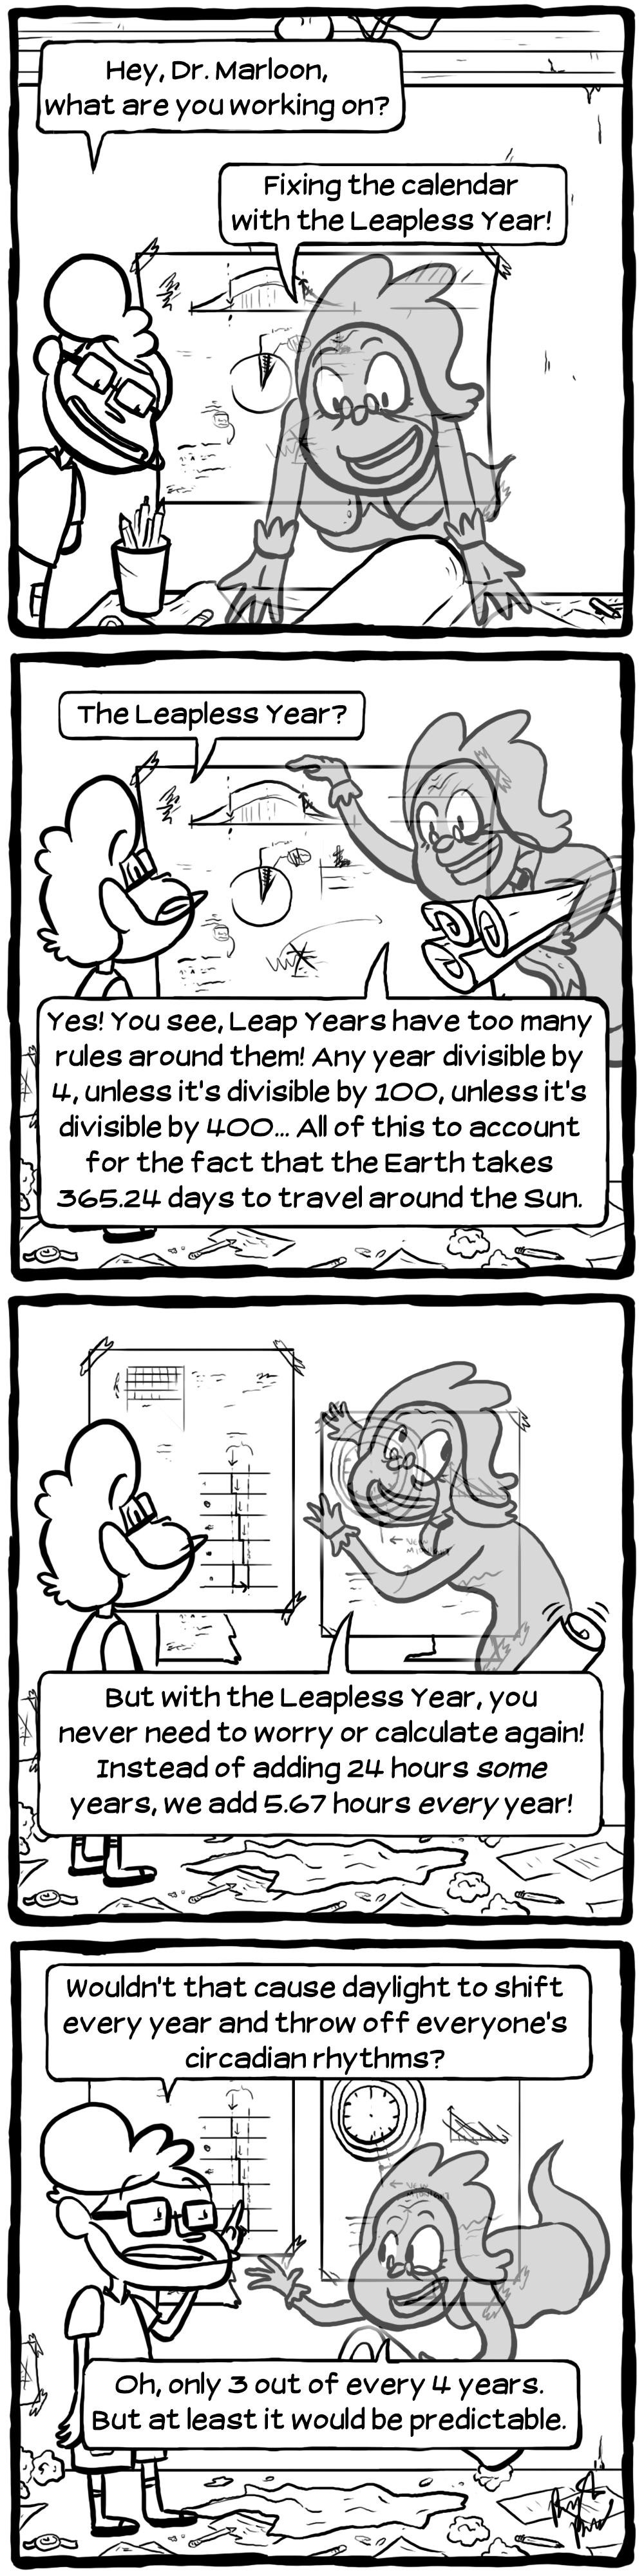 "[Blatsy: ""Hey, Dr. Marloon, what are you working on?"" Marloon: ""Fixing the calendar with the Leapless Year!""] [Blatsy: ""The Leapless Year?"" Marloon: ""Yes! You see, Leap Years have too many rules around them! Any year divisible by 4, unless it's divisible by 100, unless it's divisible by 400... All of this to account for the fact that the Earth takes 365.24 days to travel around the Sun.""] [Marloon: ""But with the Leapless Year, you never need to worry or calculate again! Instead of adding 24 hours _some_ years, we add 5.67 hours _every_ year!""] [Blatsy: ""Wouldn't that cause daylight to shift every year and throw off everyone's circadian rhythms?"" Marloon: ""Oh, only 3 out of every 4 years. But at least it would be predictable.""]"